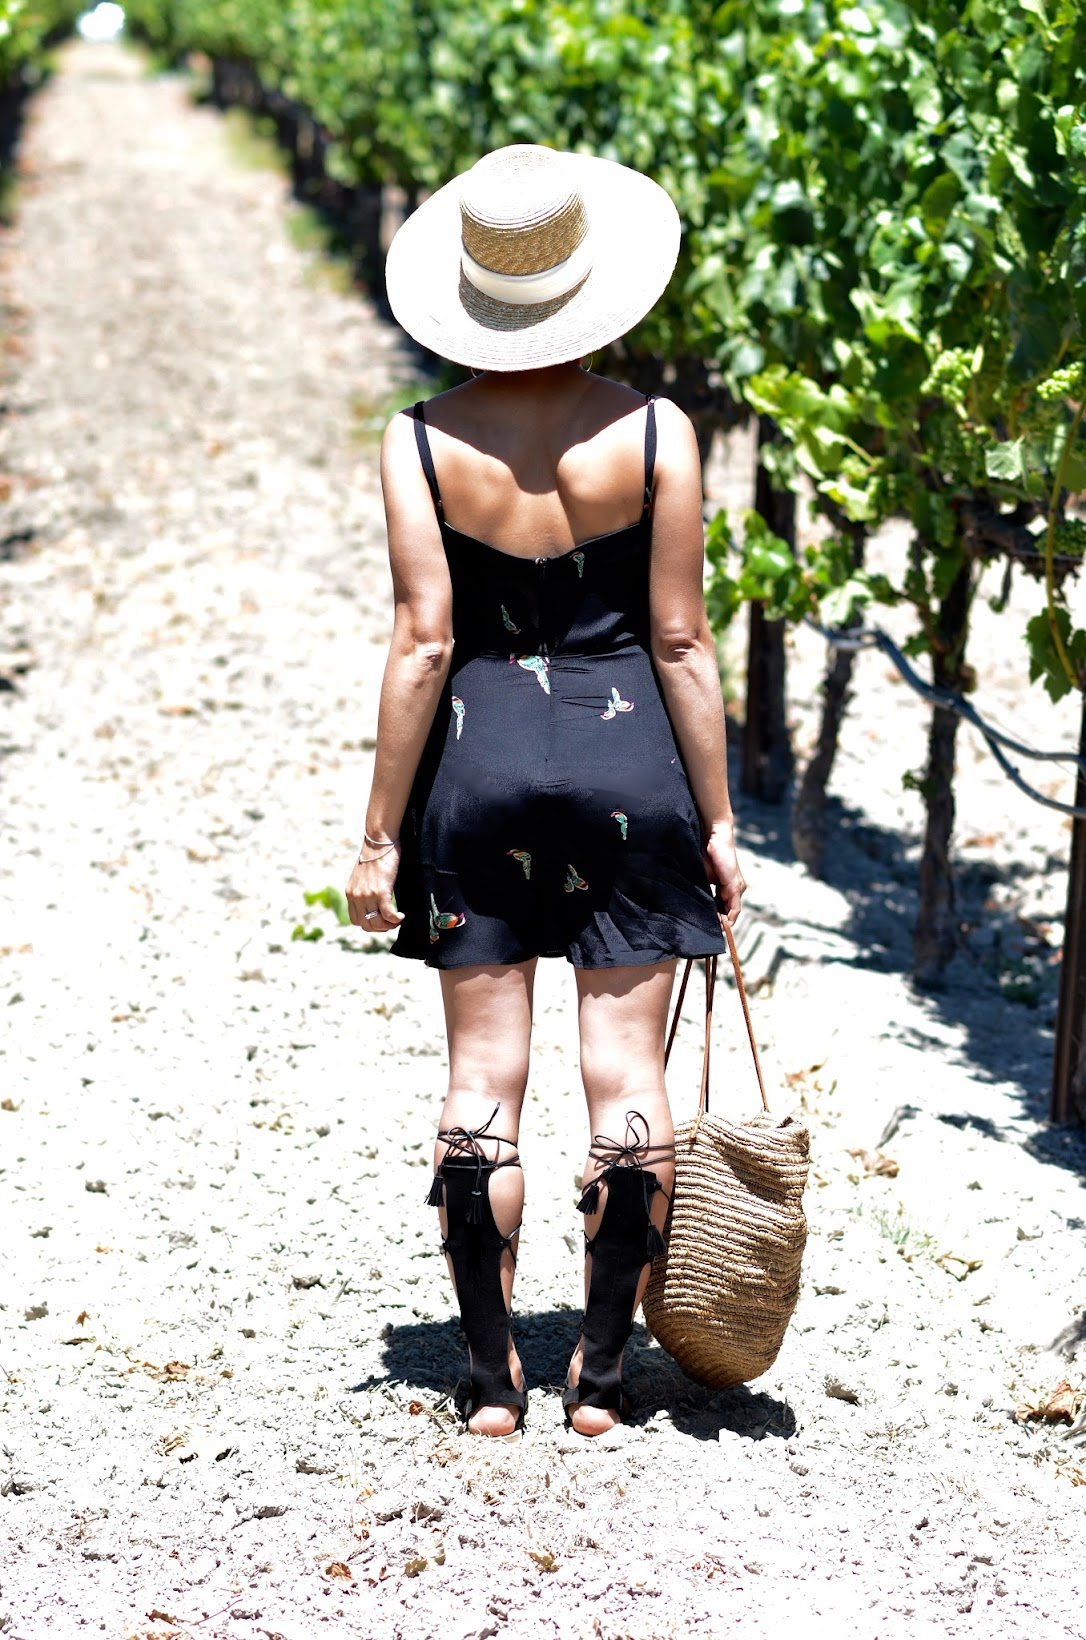 Napa Wine Valley, Reformation dress, ref babe, summer style, chic summer style, cute summer style, gladiator sandals, straw tote, straw summer hat